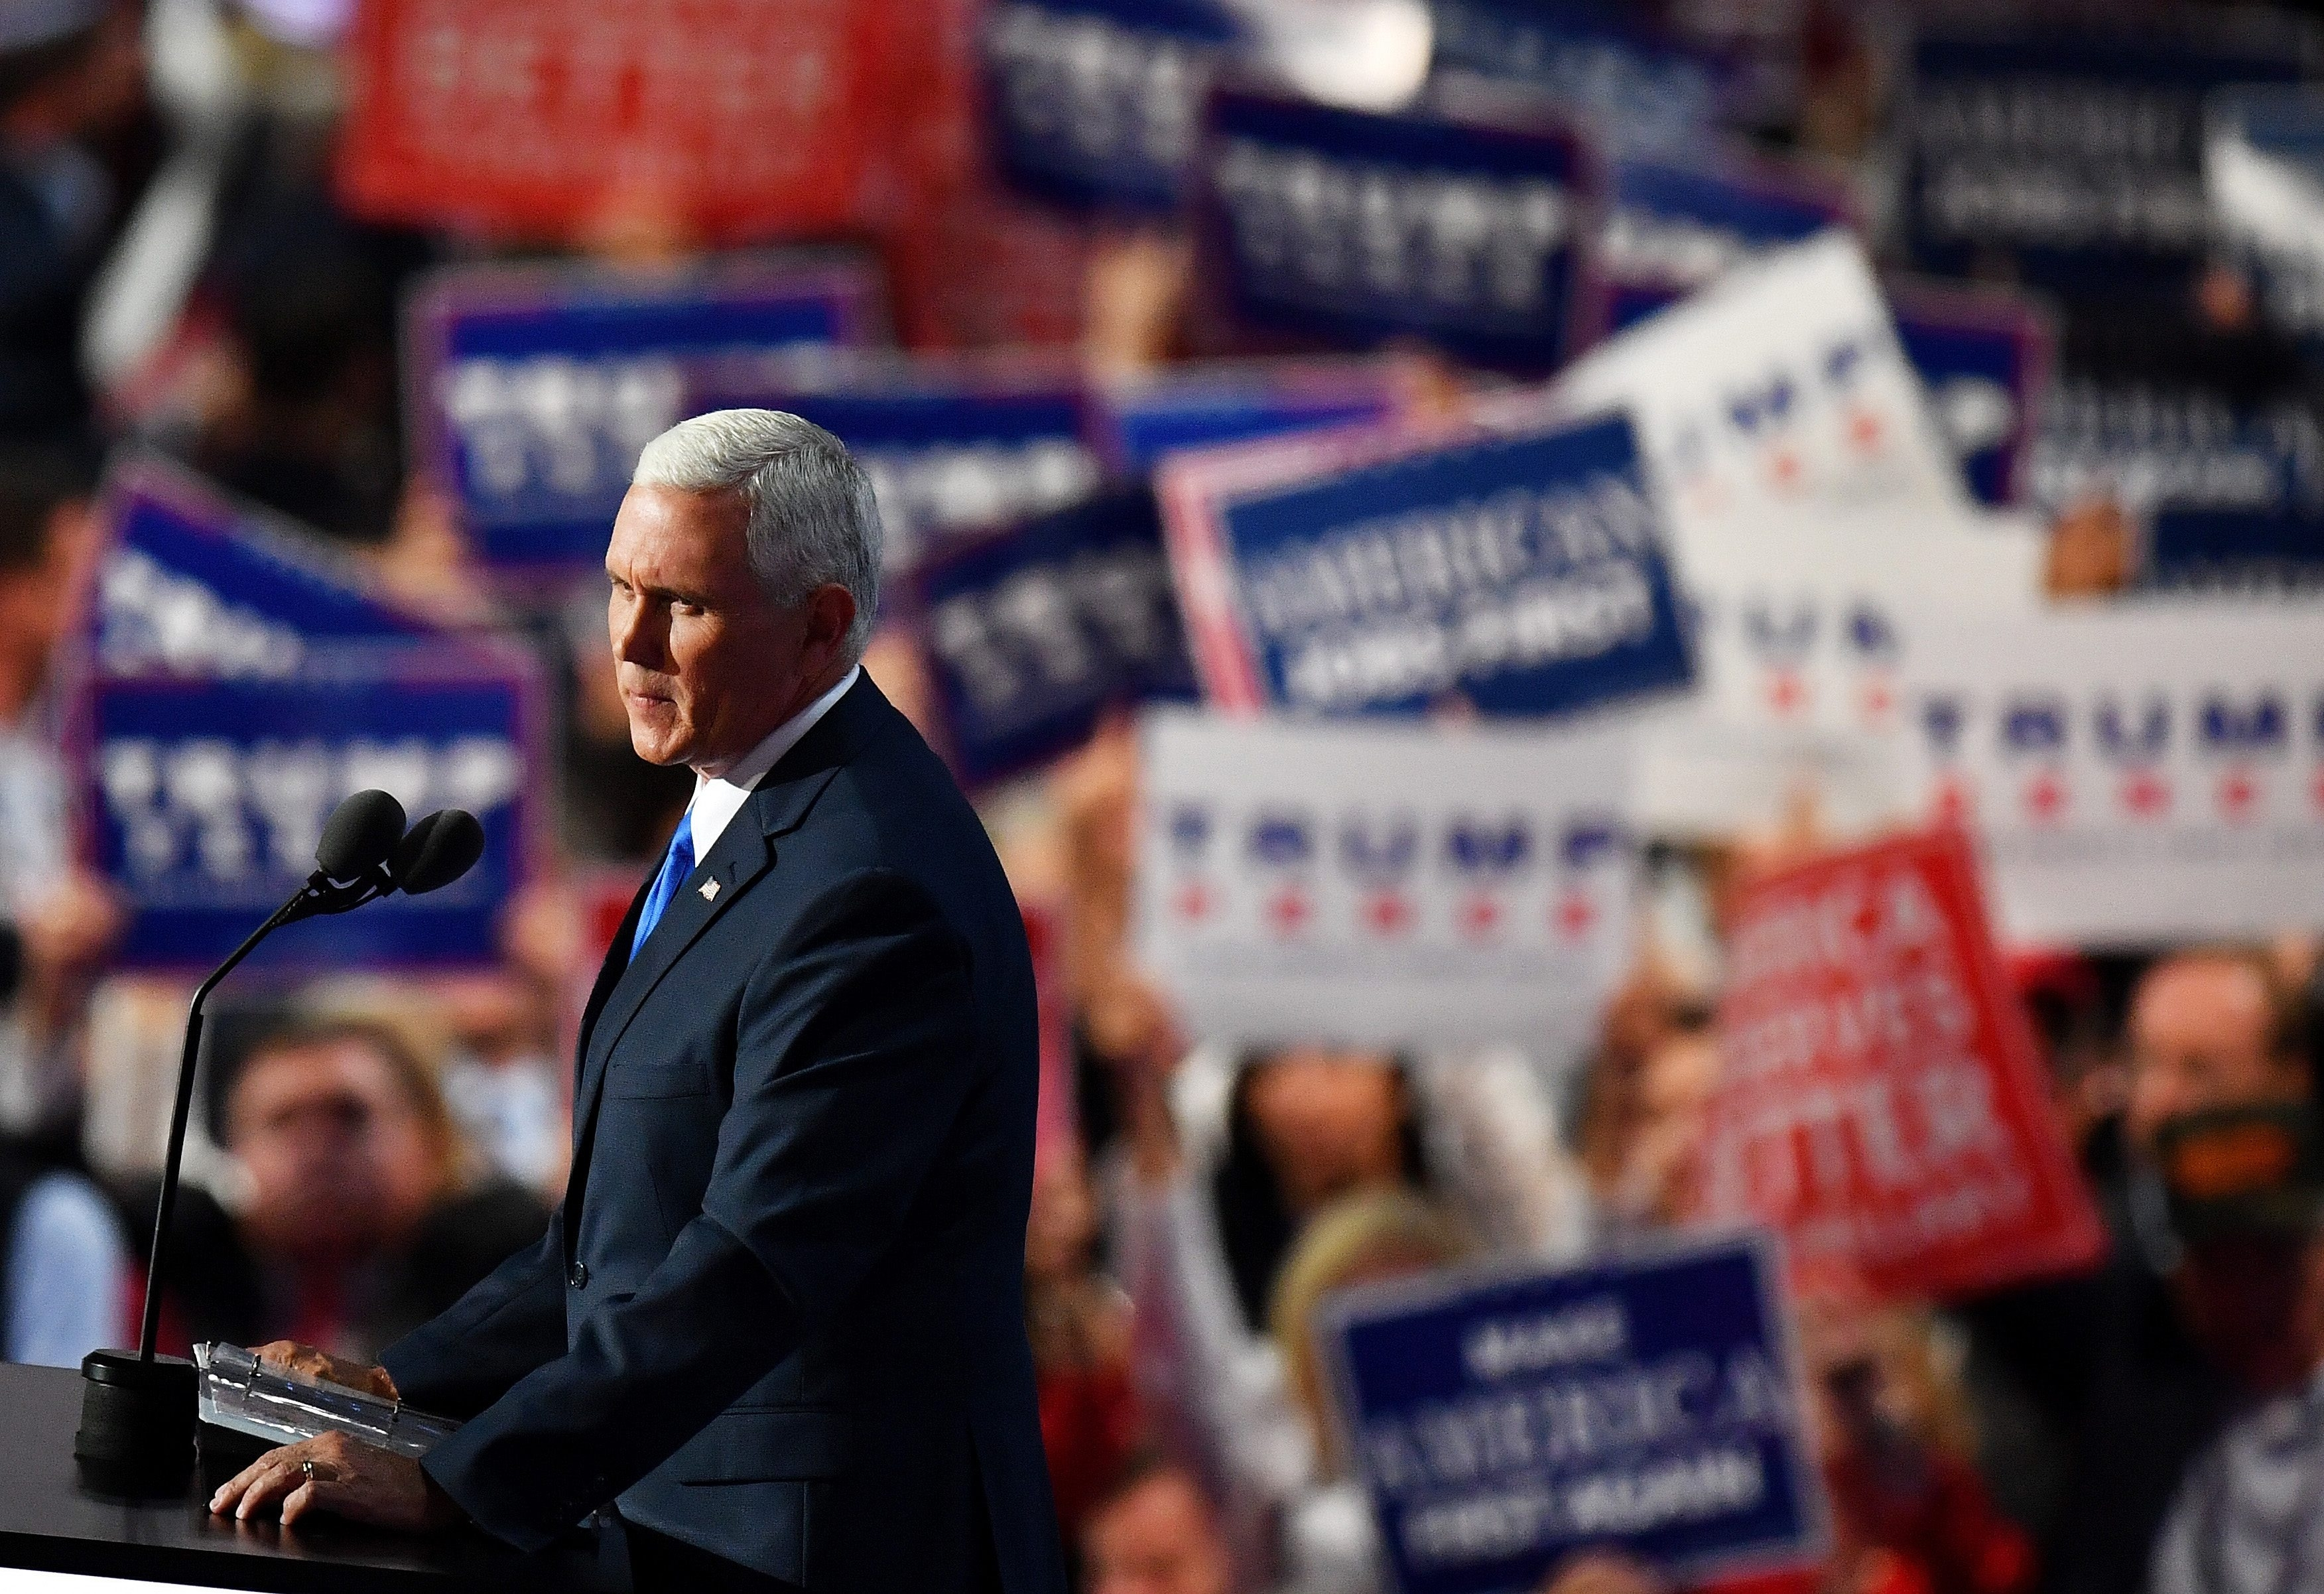 Mike Pence's speech was supposed to be the lead story Wednesday. Instead, it was overshadowed by events, including the boos for Ted Cruz.